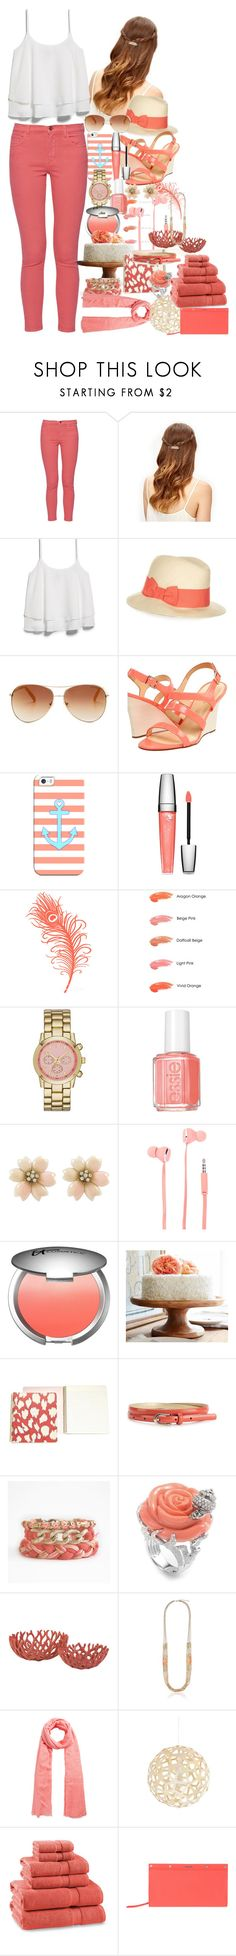 """""""Just Coral!"""" by pancakemafia ❤ liked on Polyvore featuring French Connection, MANGO, Monsoon, Tommy Hilfiger, Kate Spade, Casetify, Lancôme, WALL, Anna Sui and Merona"""